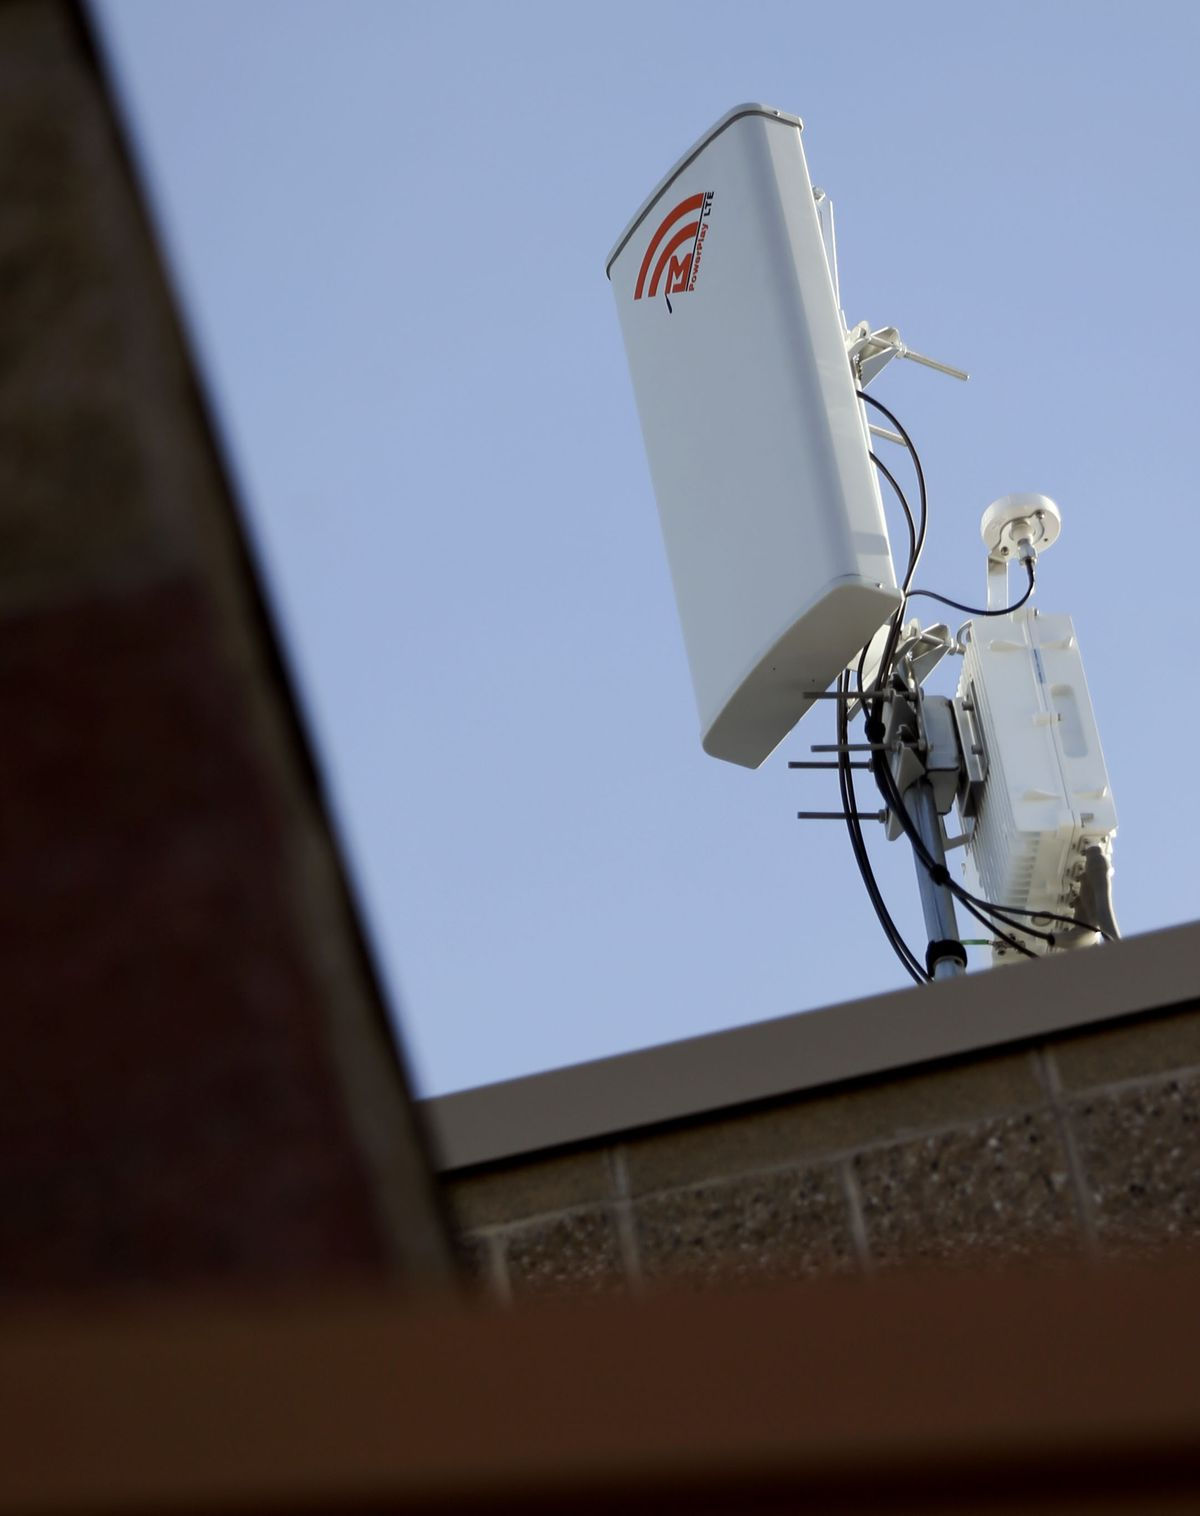 A transmitter that connects a wireless broadband network is visible on the roof of the Murray City School District office on Thursday, Jan.14, 2021. The district is the first in the nation to create and launch its own wireless broadband network for students.